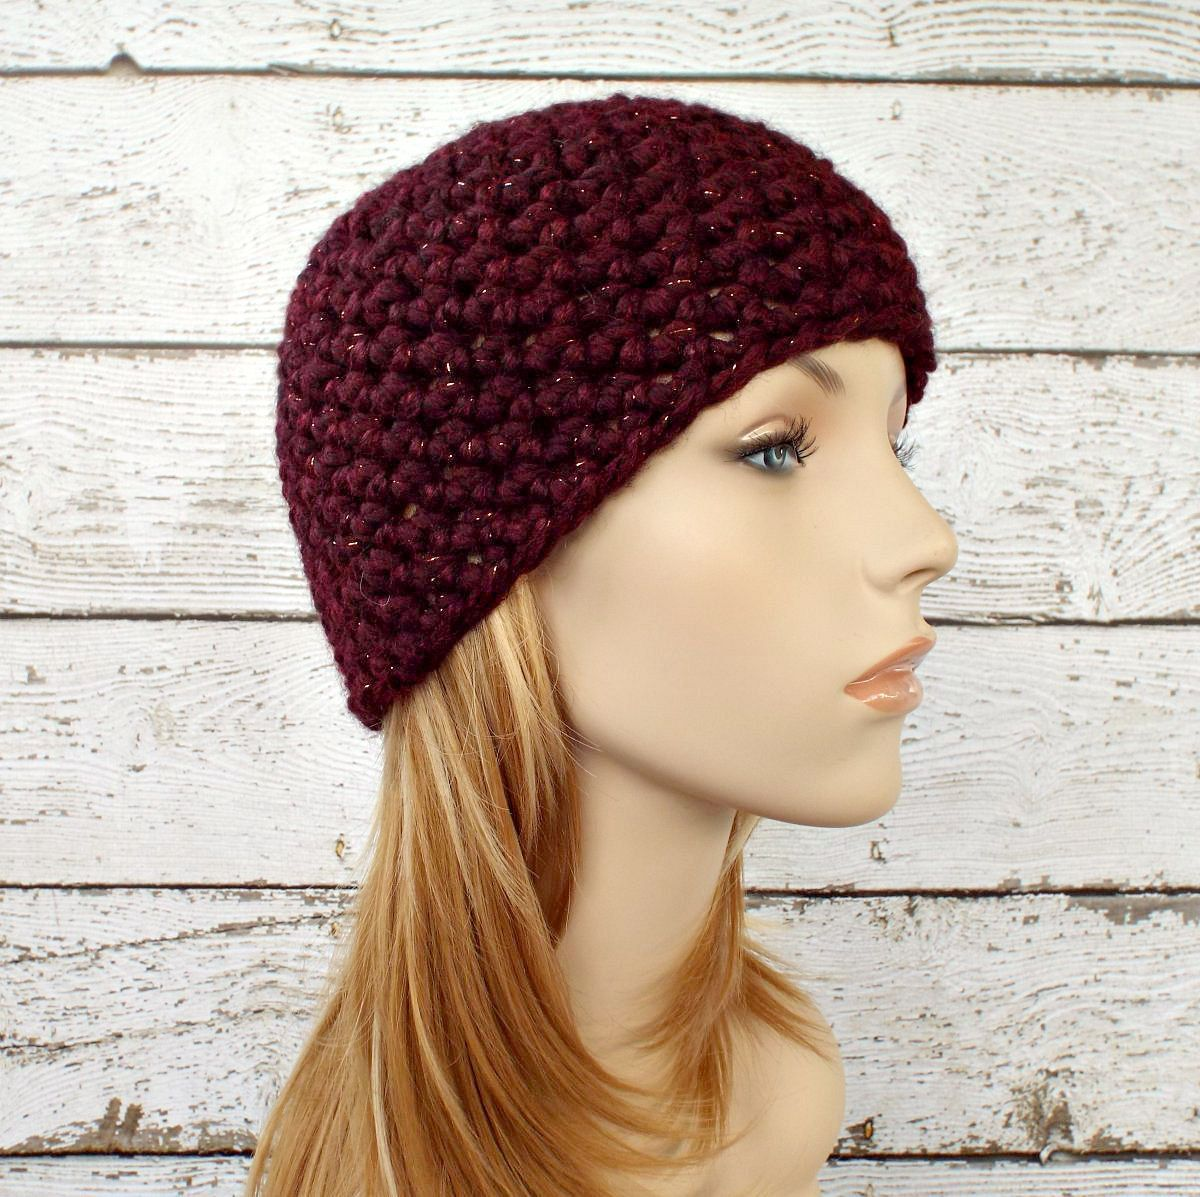 0cfc3e61e0d Burgundy Crochet Hat Red Womens Hat - Cabernet Red Hat Red Beanie Chunky Crochet  Hat Womens Accessories Winter Hat - Ready To Ship by pixiebell on Etsy